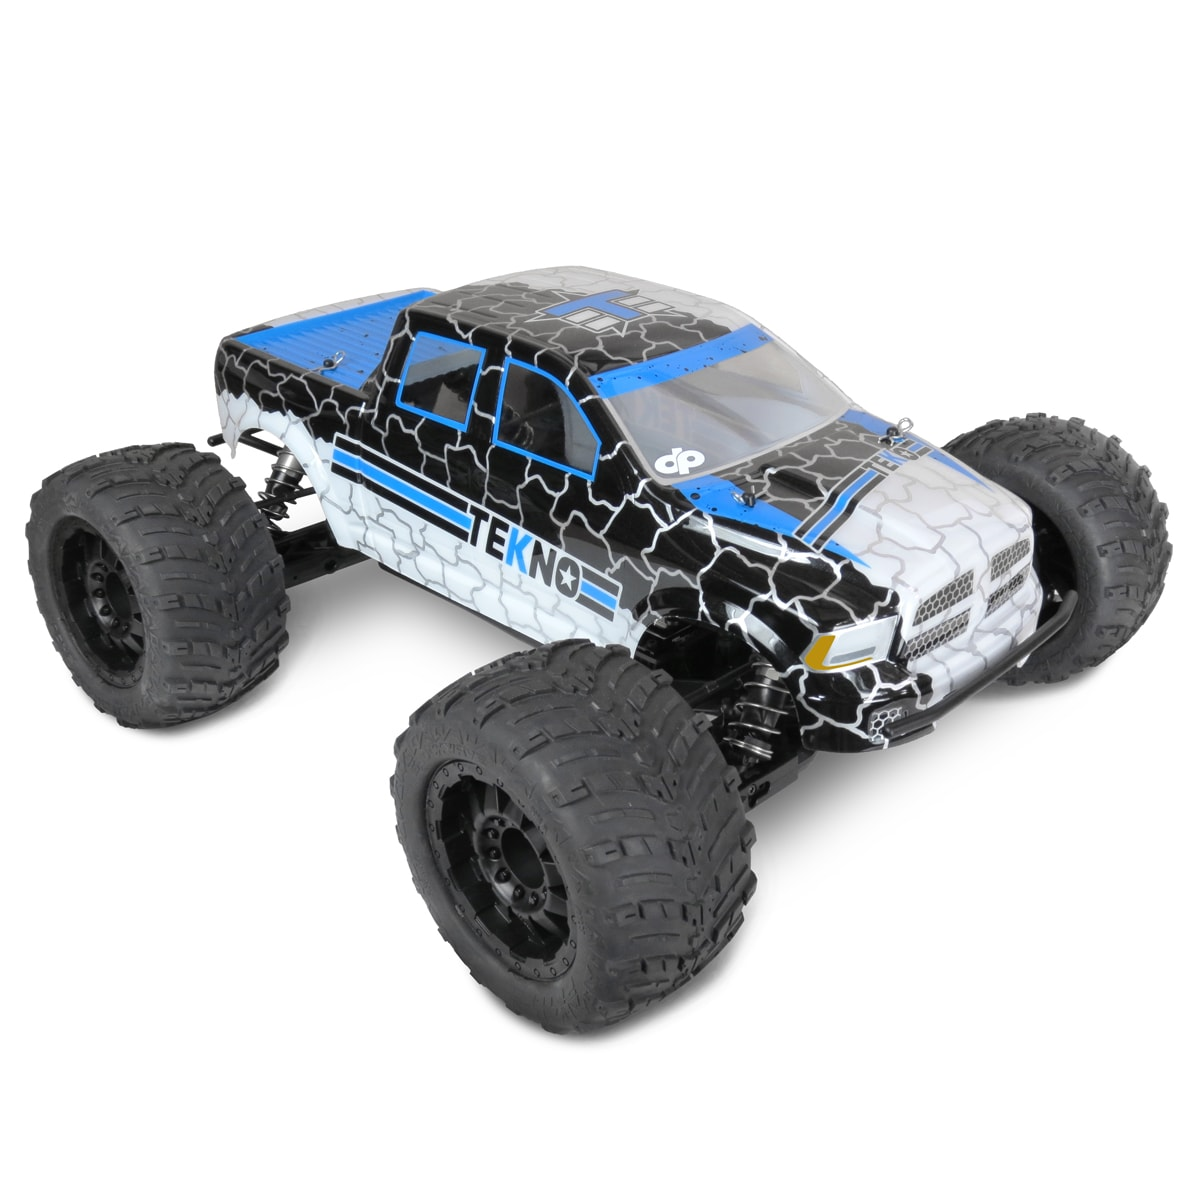 Tekno Rc S New Mt410 1 10 Monster Truck Rc Newb